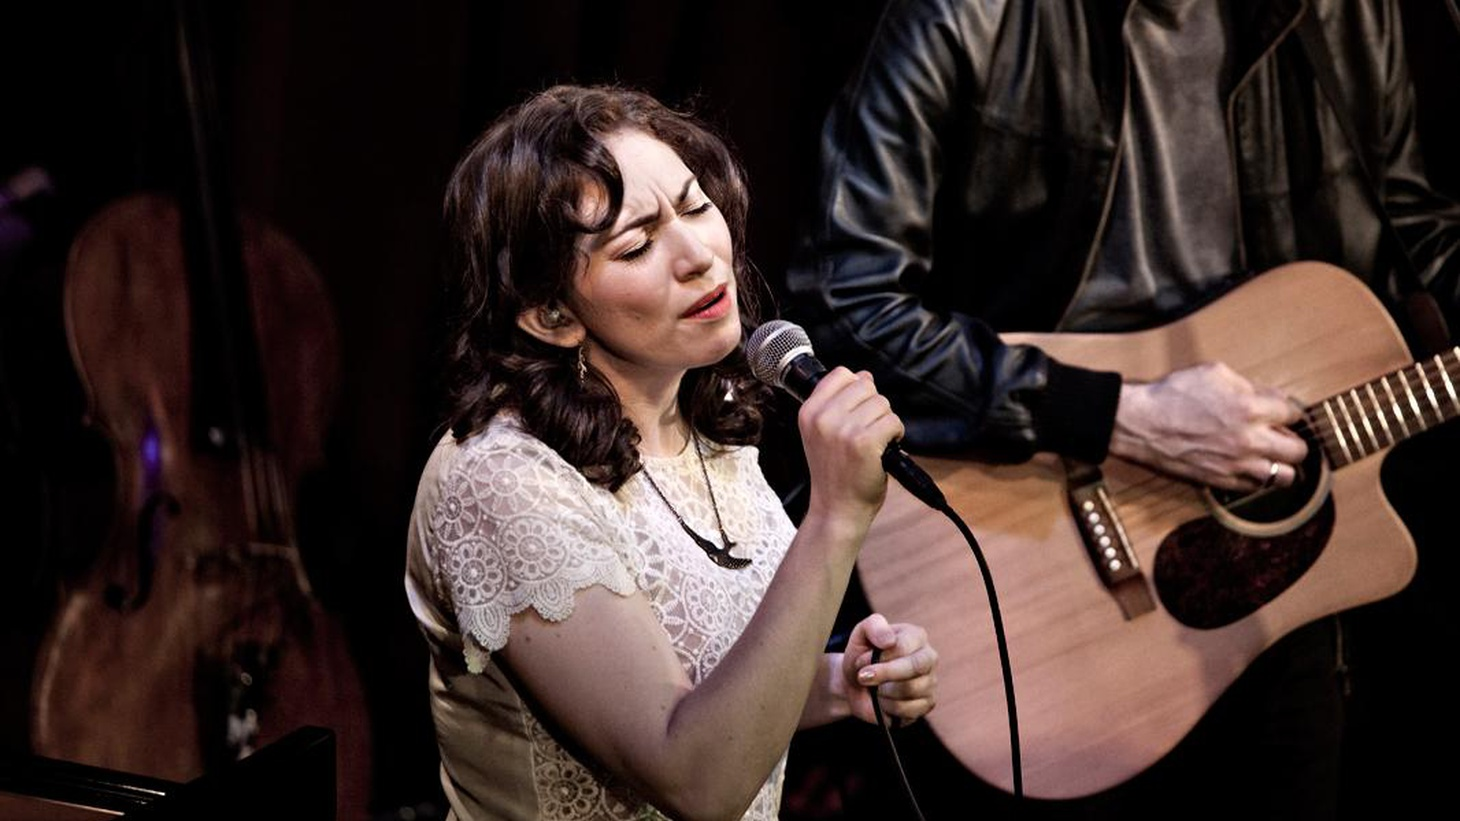 Regina Spektor performed an emotional set of songs from her album What We Saw in the Cheap Seatsin front of a loving live audience at KCRW's Apogee Sessions.